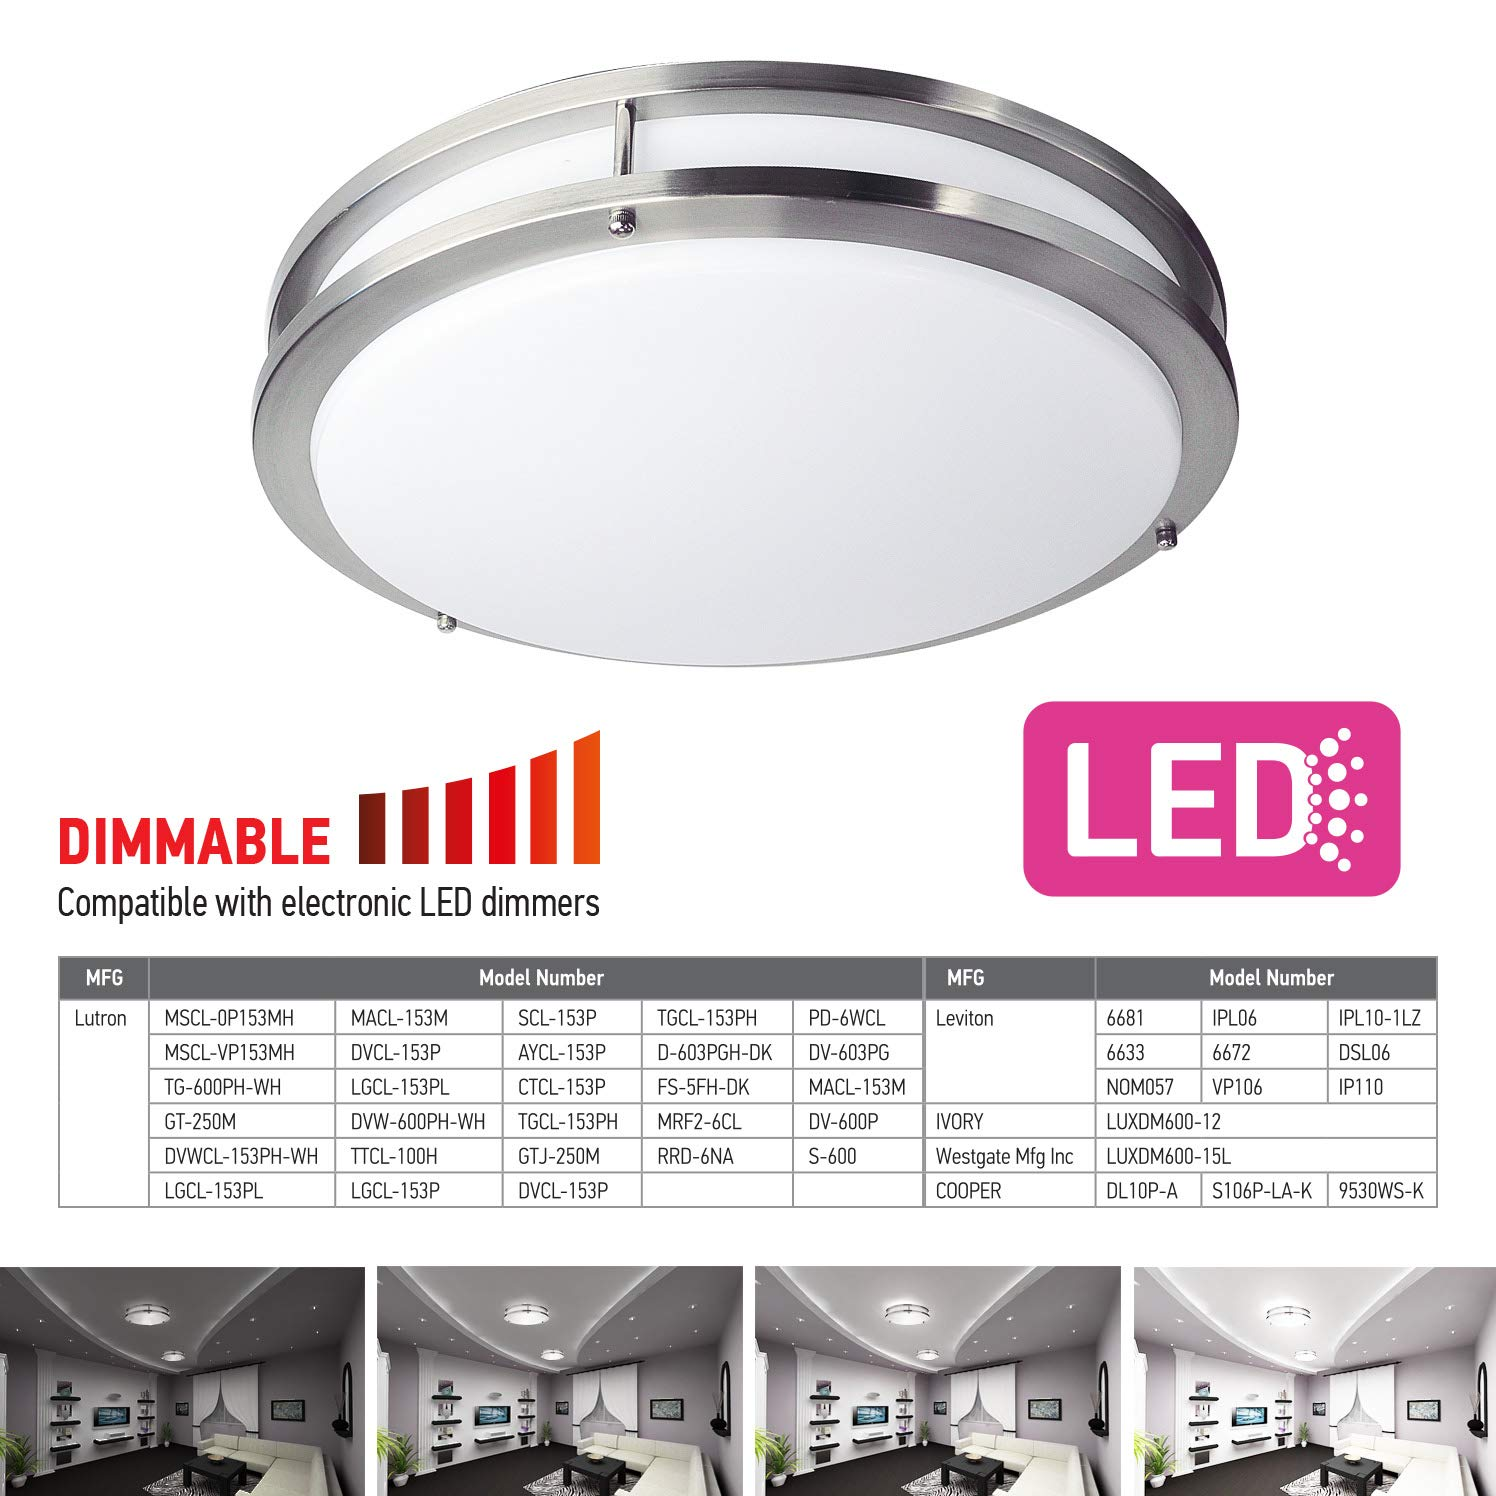 OSTWIN 18'' Large Size LED Ceiling Light Fixture Flush Mount, Dimmable, Round 28 Watt (180W Repl.) 5000K Daylight, 1960 Lm, Nickel Finish with Acrylic Shade ETL and Energy Star Listed by OSTWIN (Image #5)